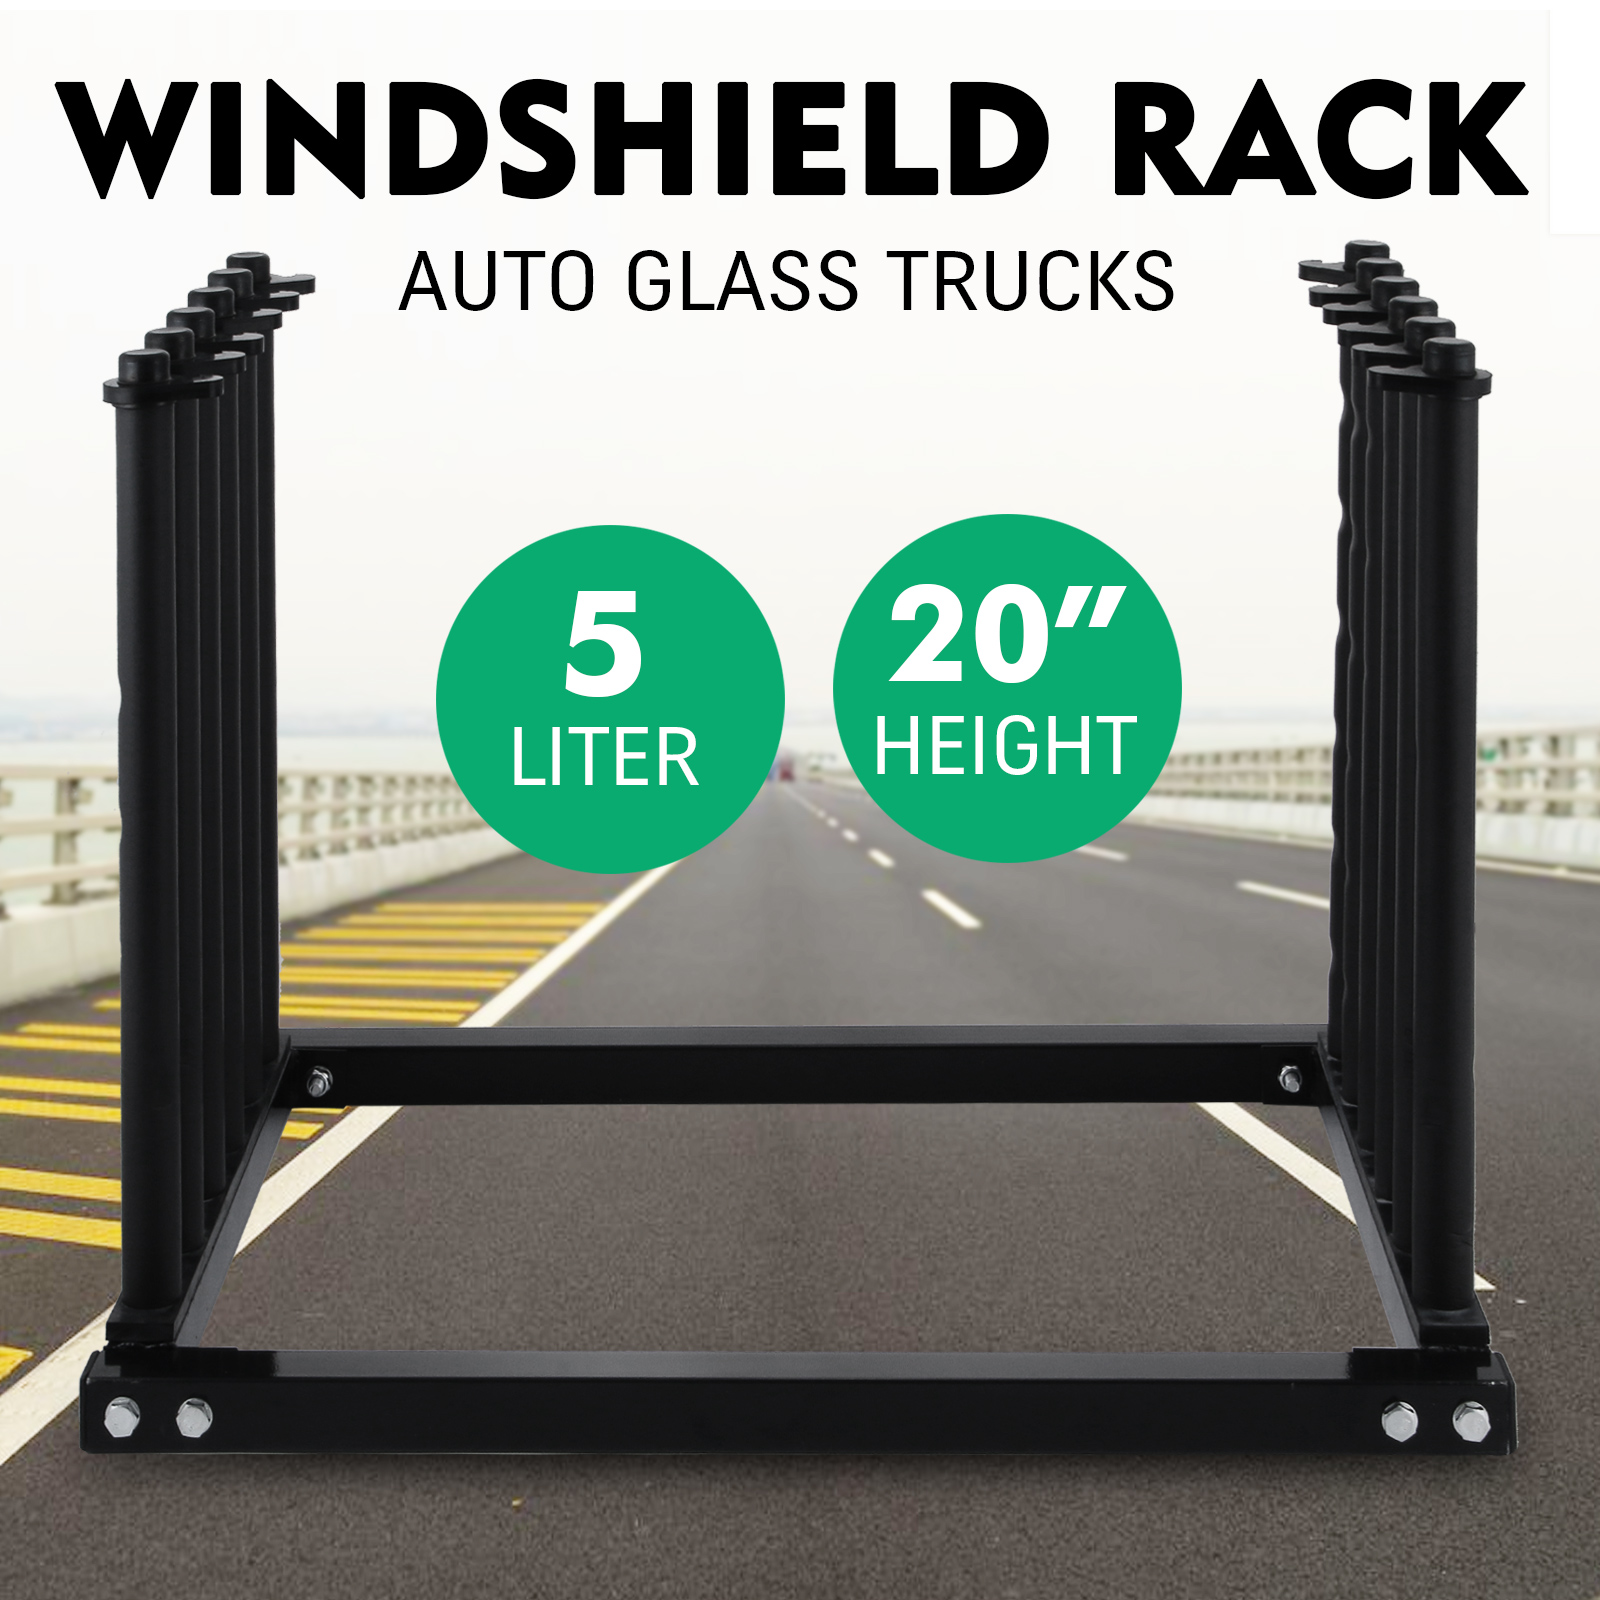 5 Lite Windshield Rack For Auto Glass And Trucks, In Box, Top Quality - vevor - ebay.co.uk